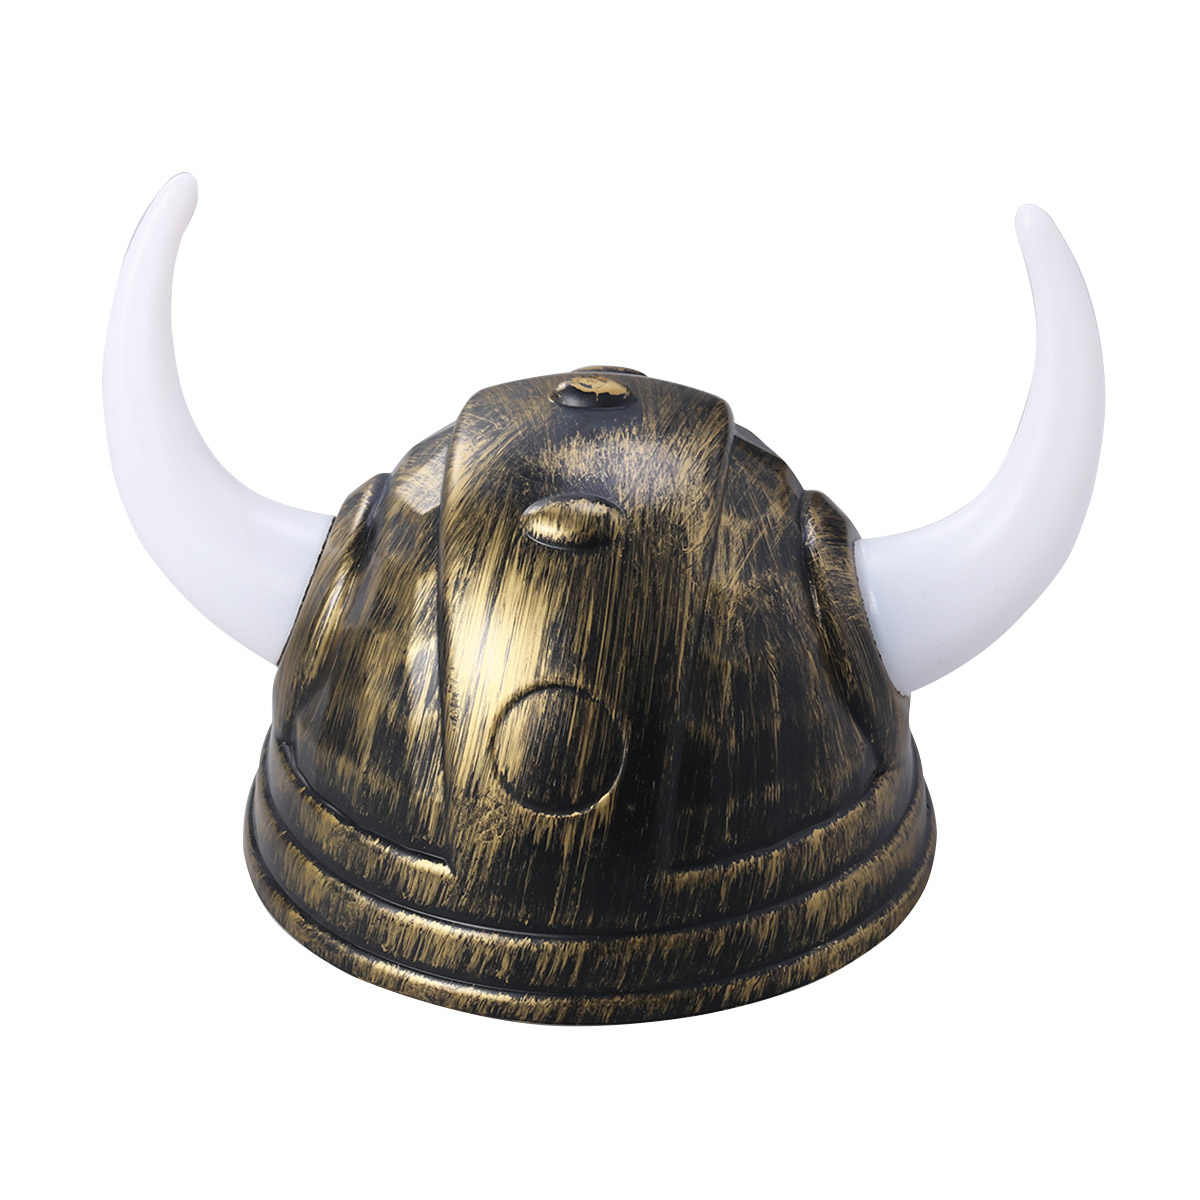 e6e70863ee1 Buffalo Ox Horns Hat Viking Hat Halloween Decoration Props Party Accessory  Kids Toys Plaything for Cosplay